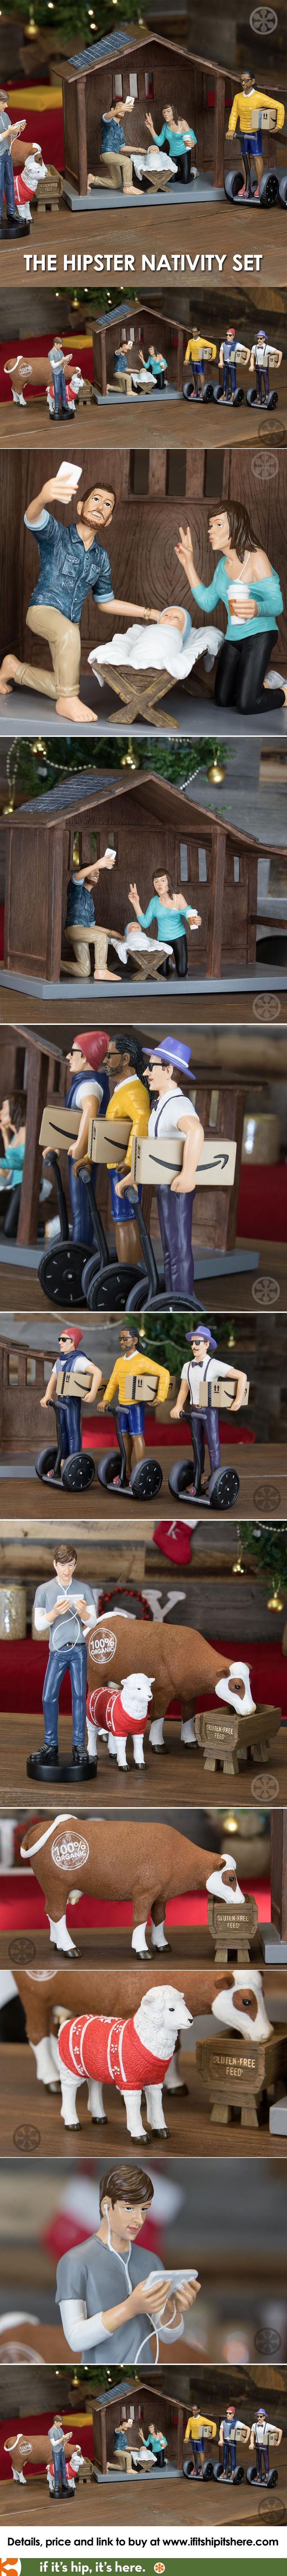 The Modern Nativity Set designed for Millennials. Details to purchase at http://www.ifitshipitshere.com/hipster-nativity-set/